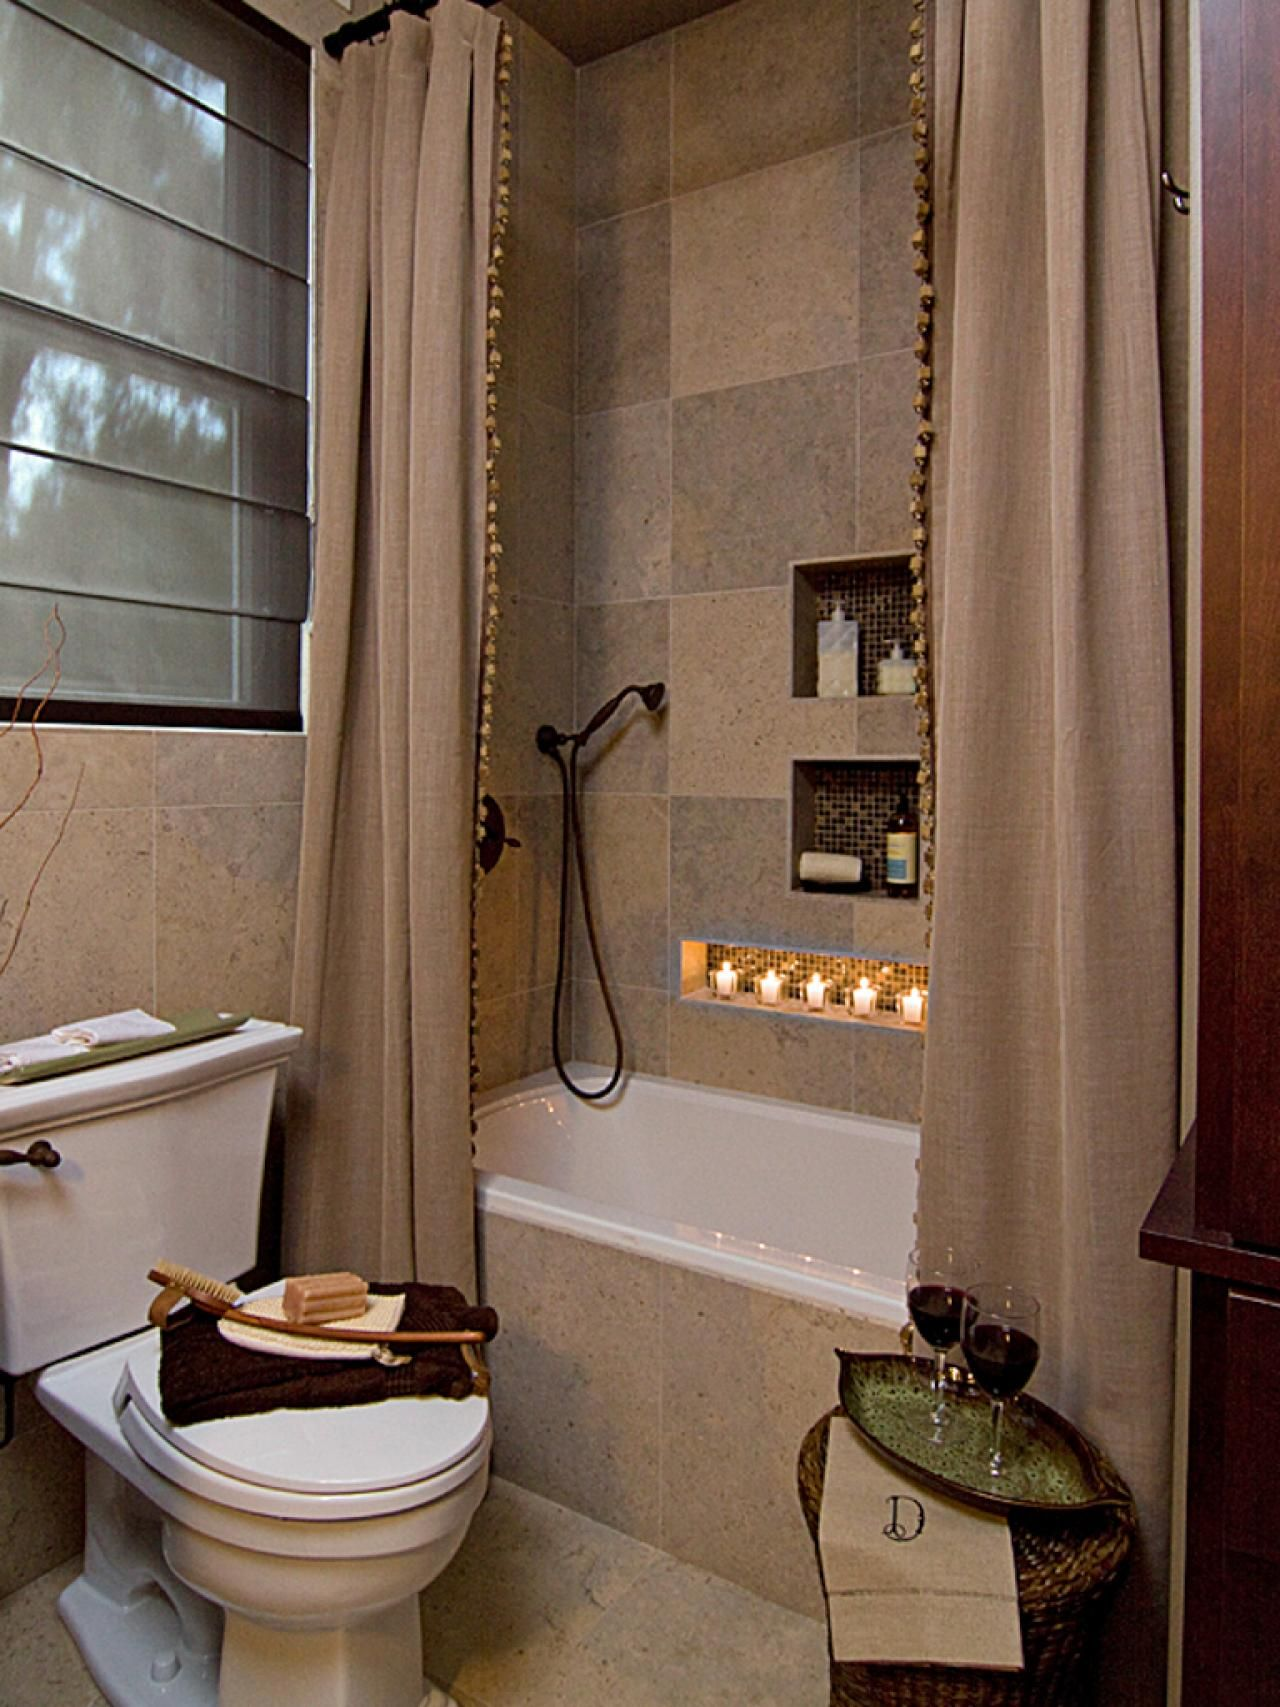 Bathroom Pictures 99 Stylish Design Ideas You'll Love